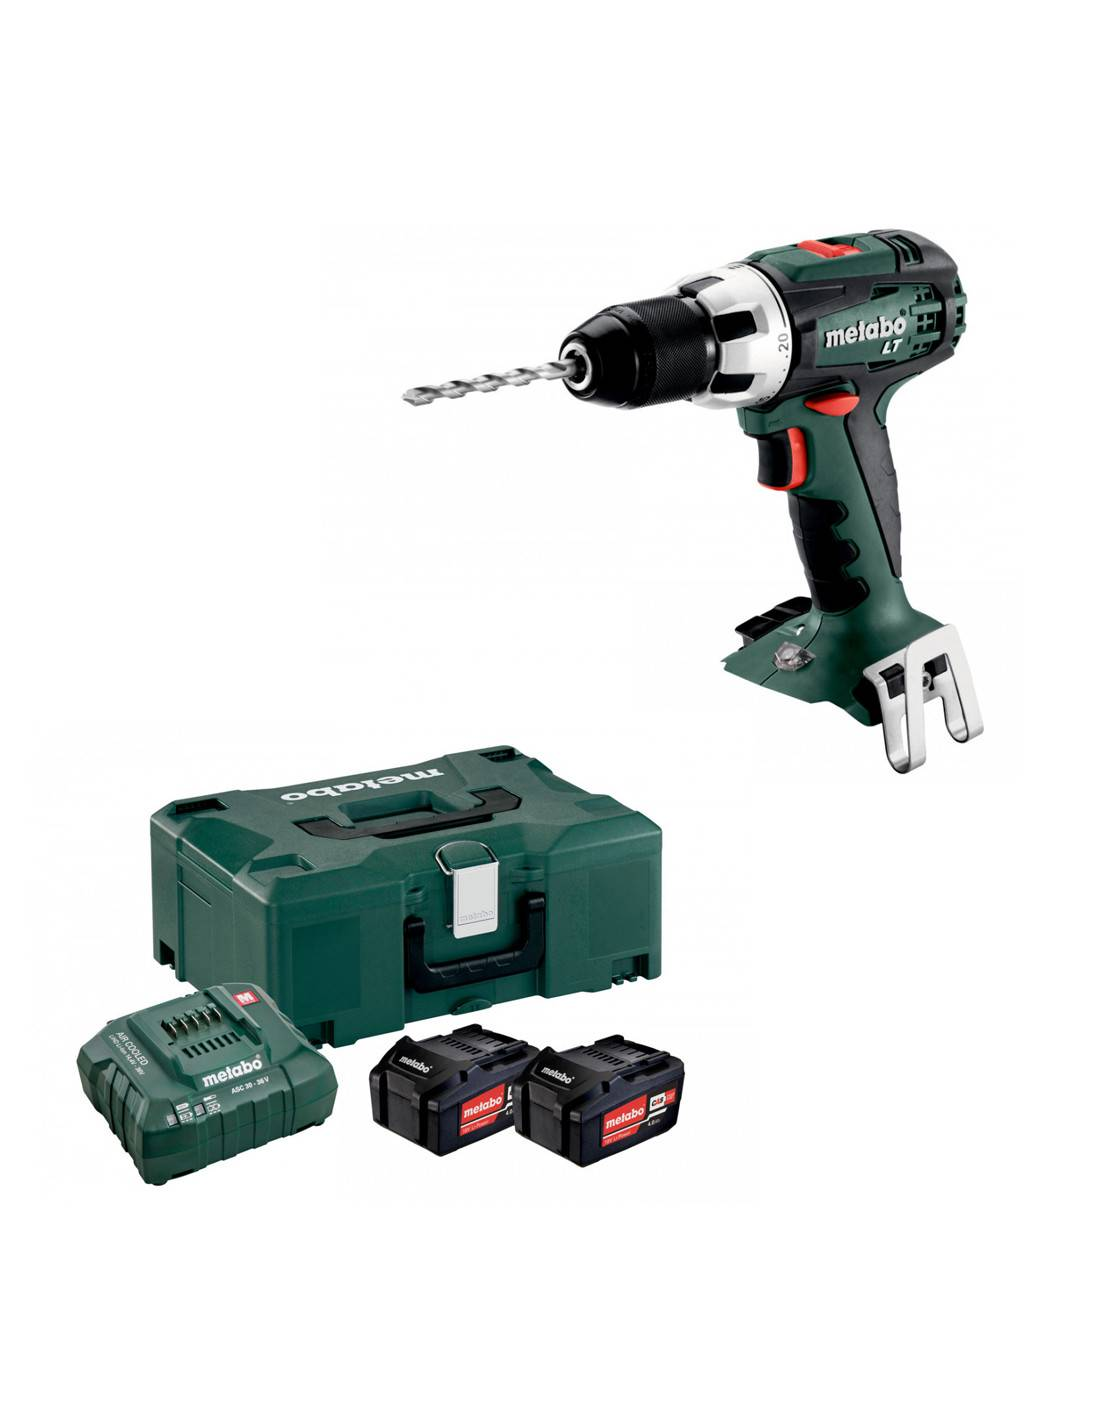 Perceuse visseuse 18V BS 18 LTX IMPULS METABO en coffret METALOC